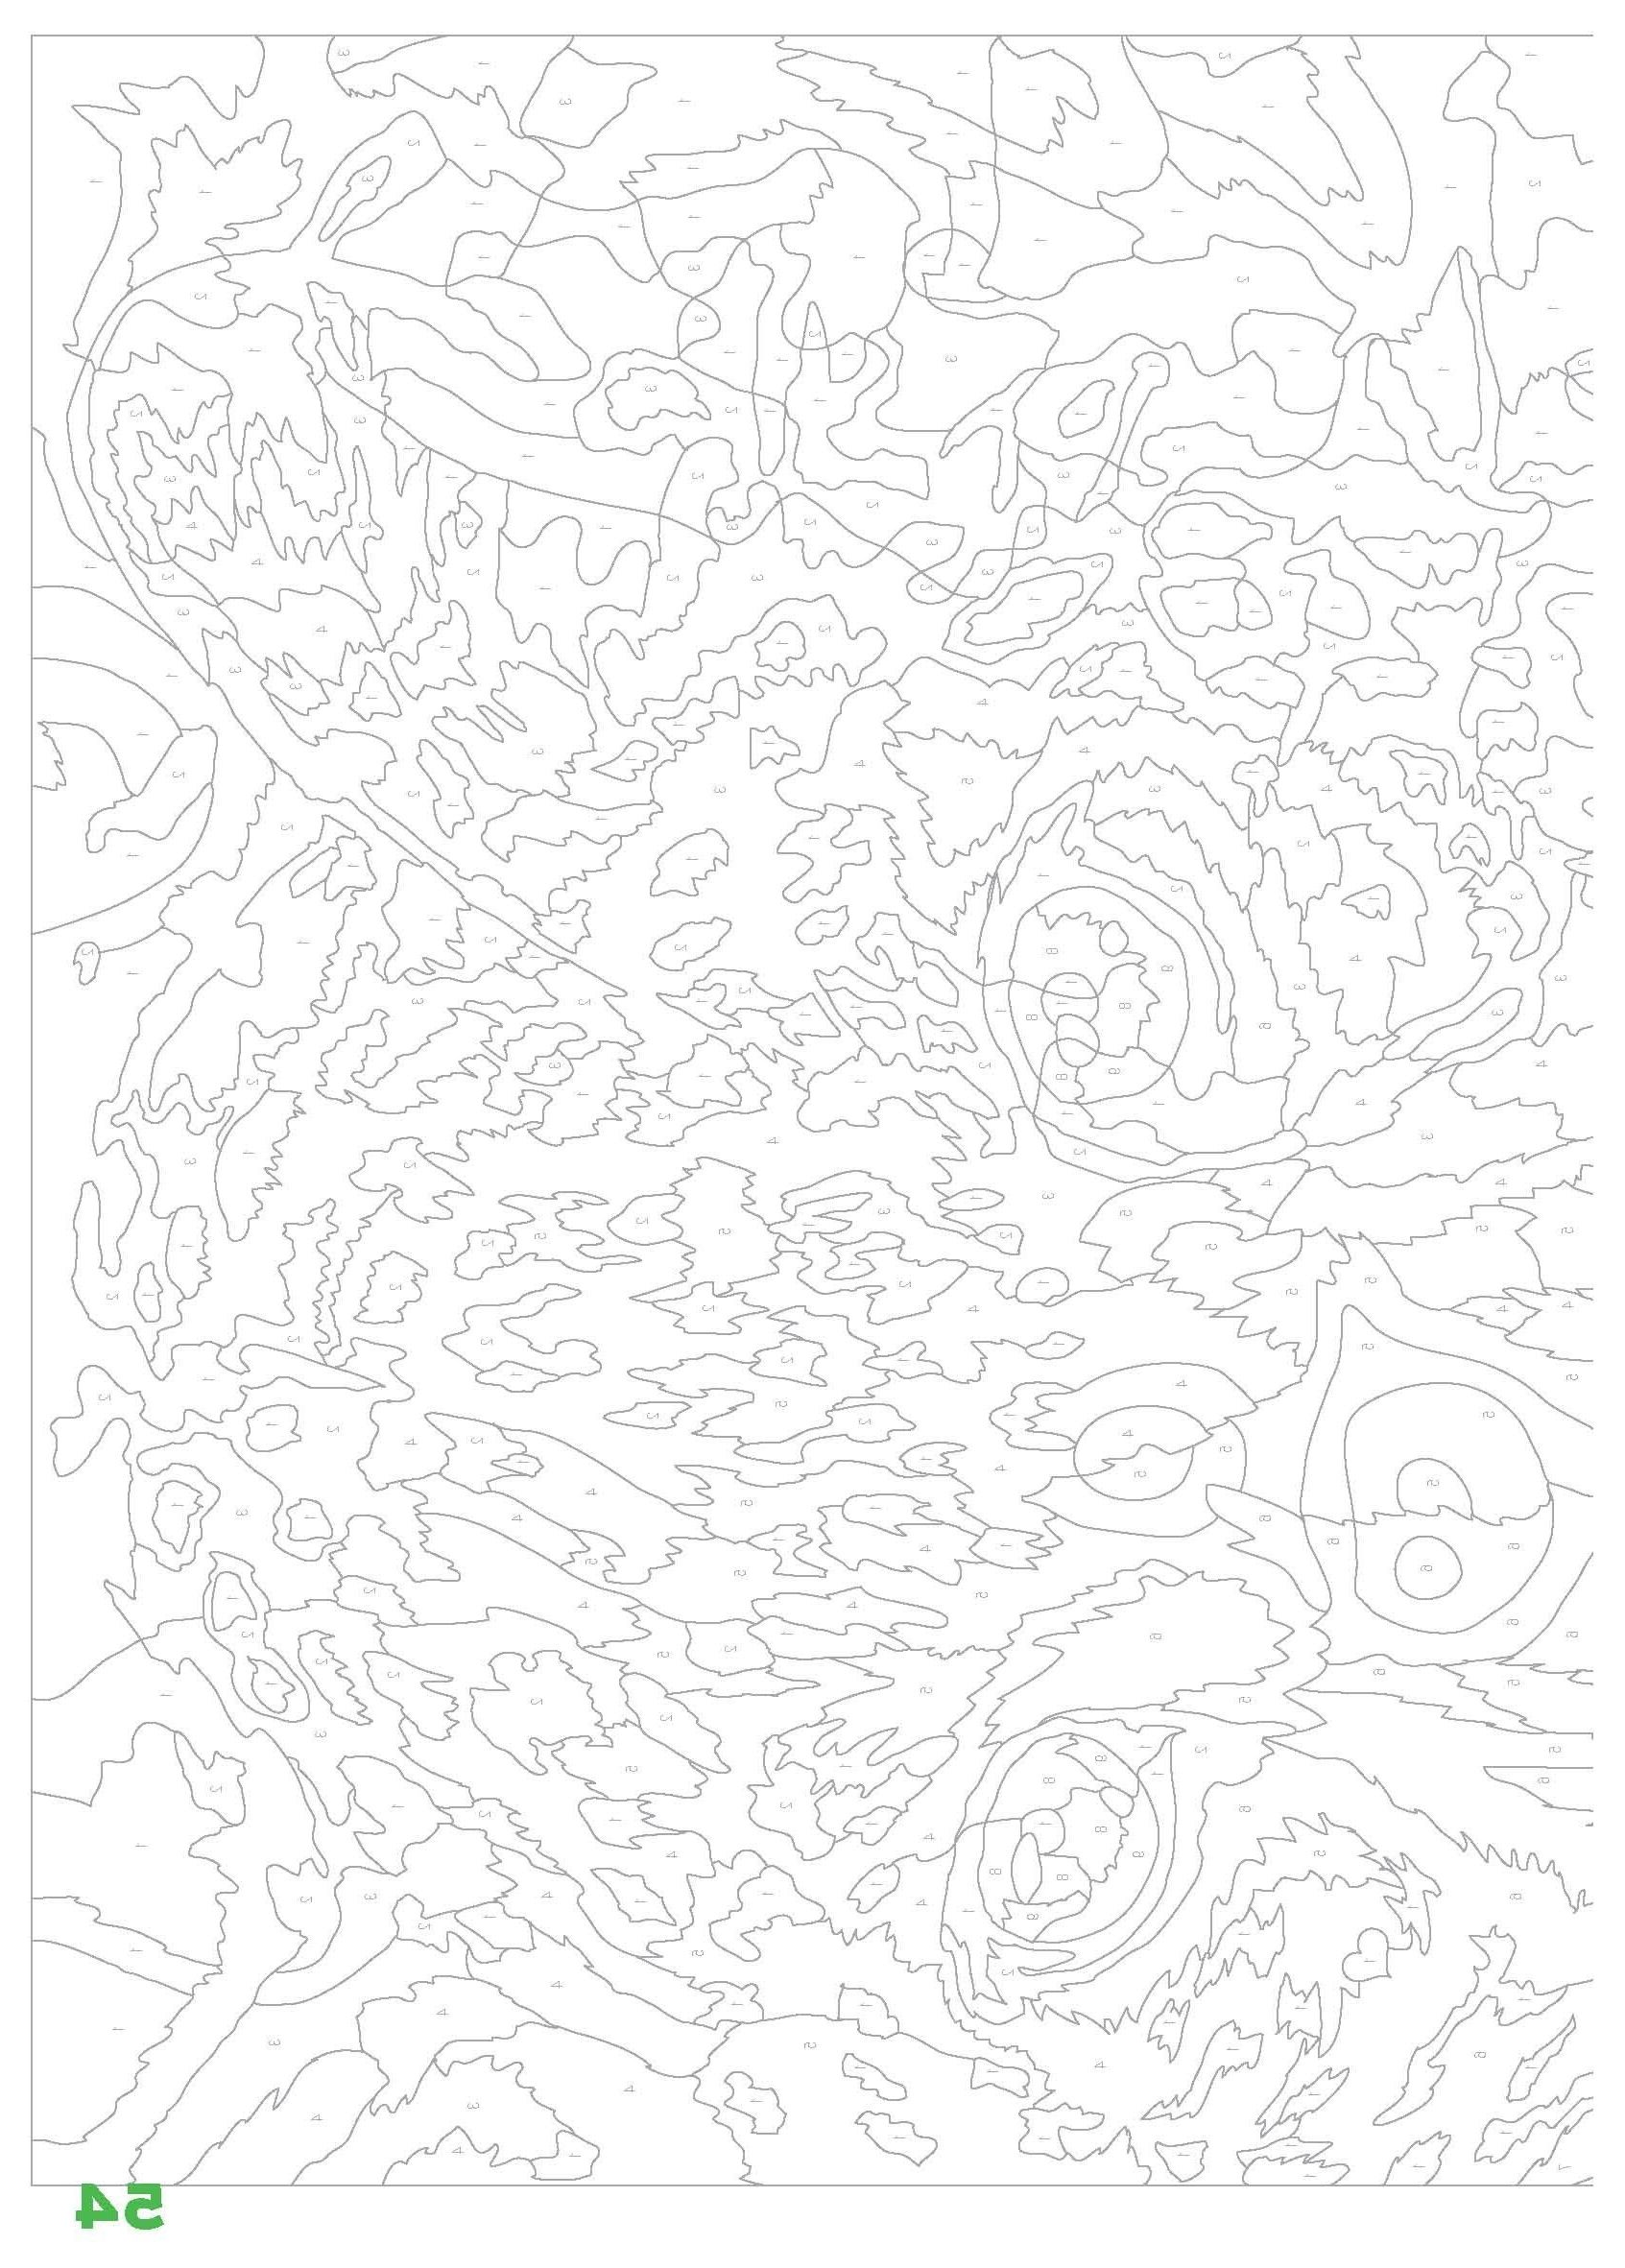 Pin on Coloriage dessin